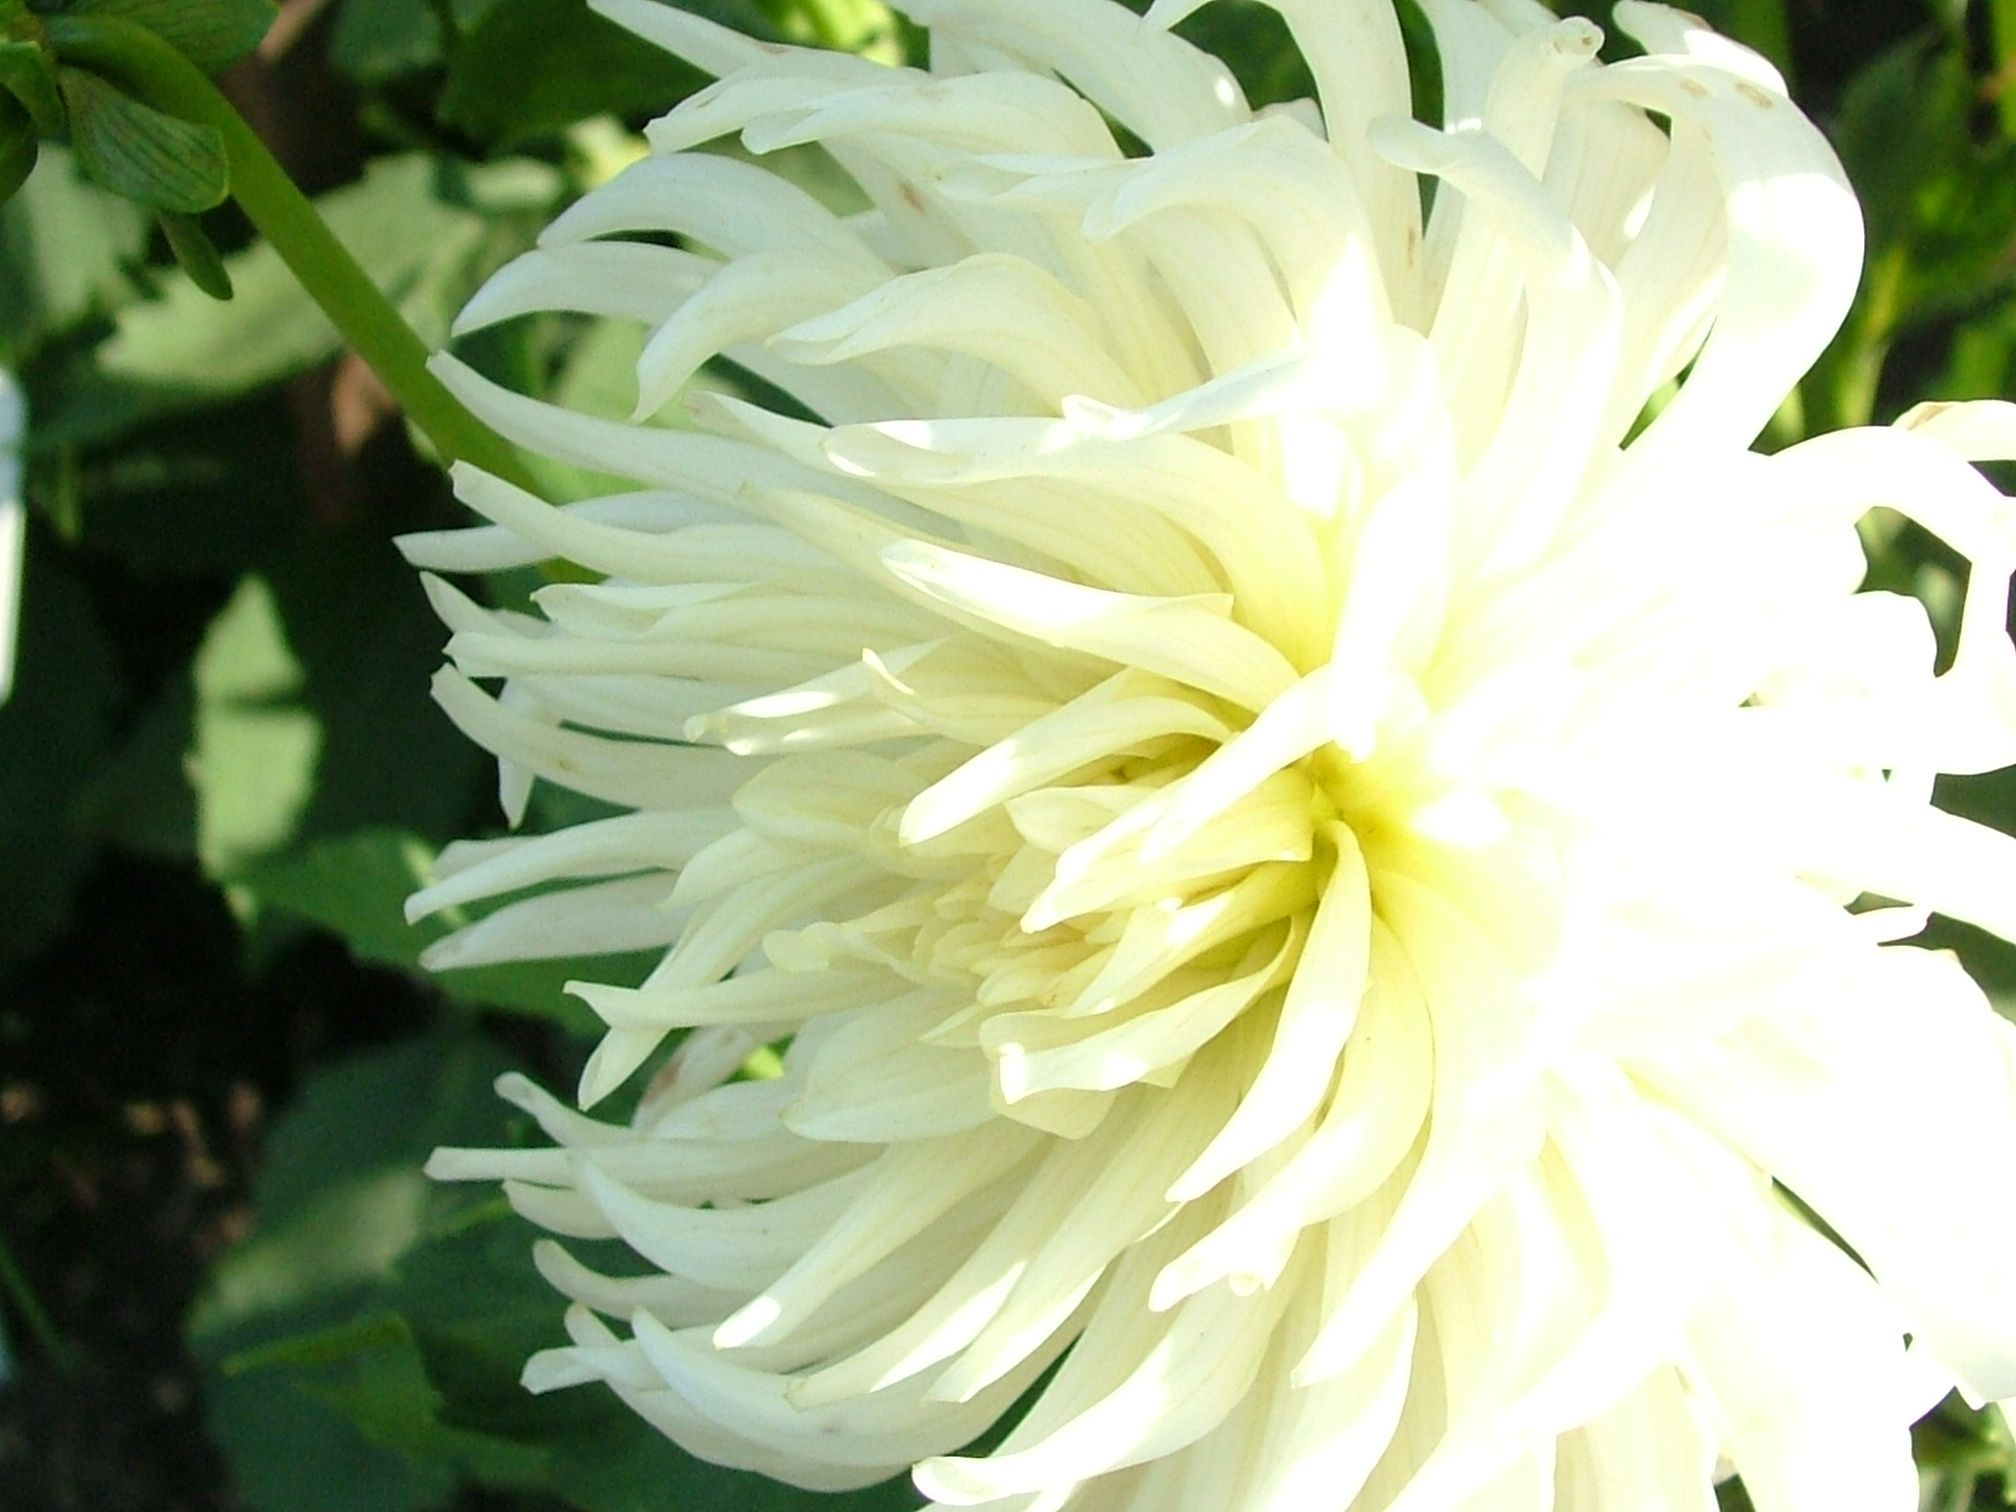 Related image   Flowers   Pinterest   Flowers, Flower and White flowers